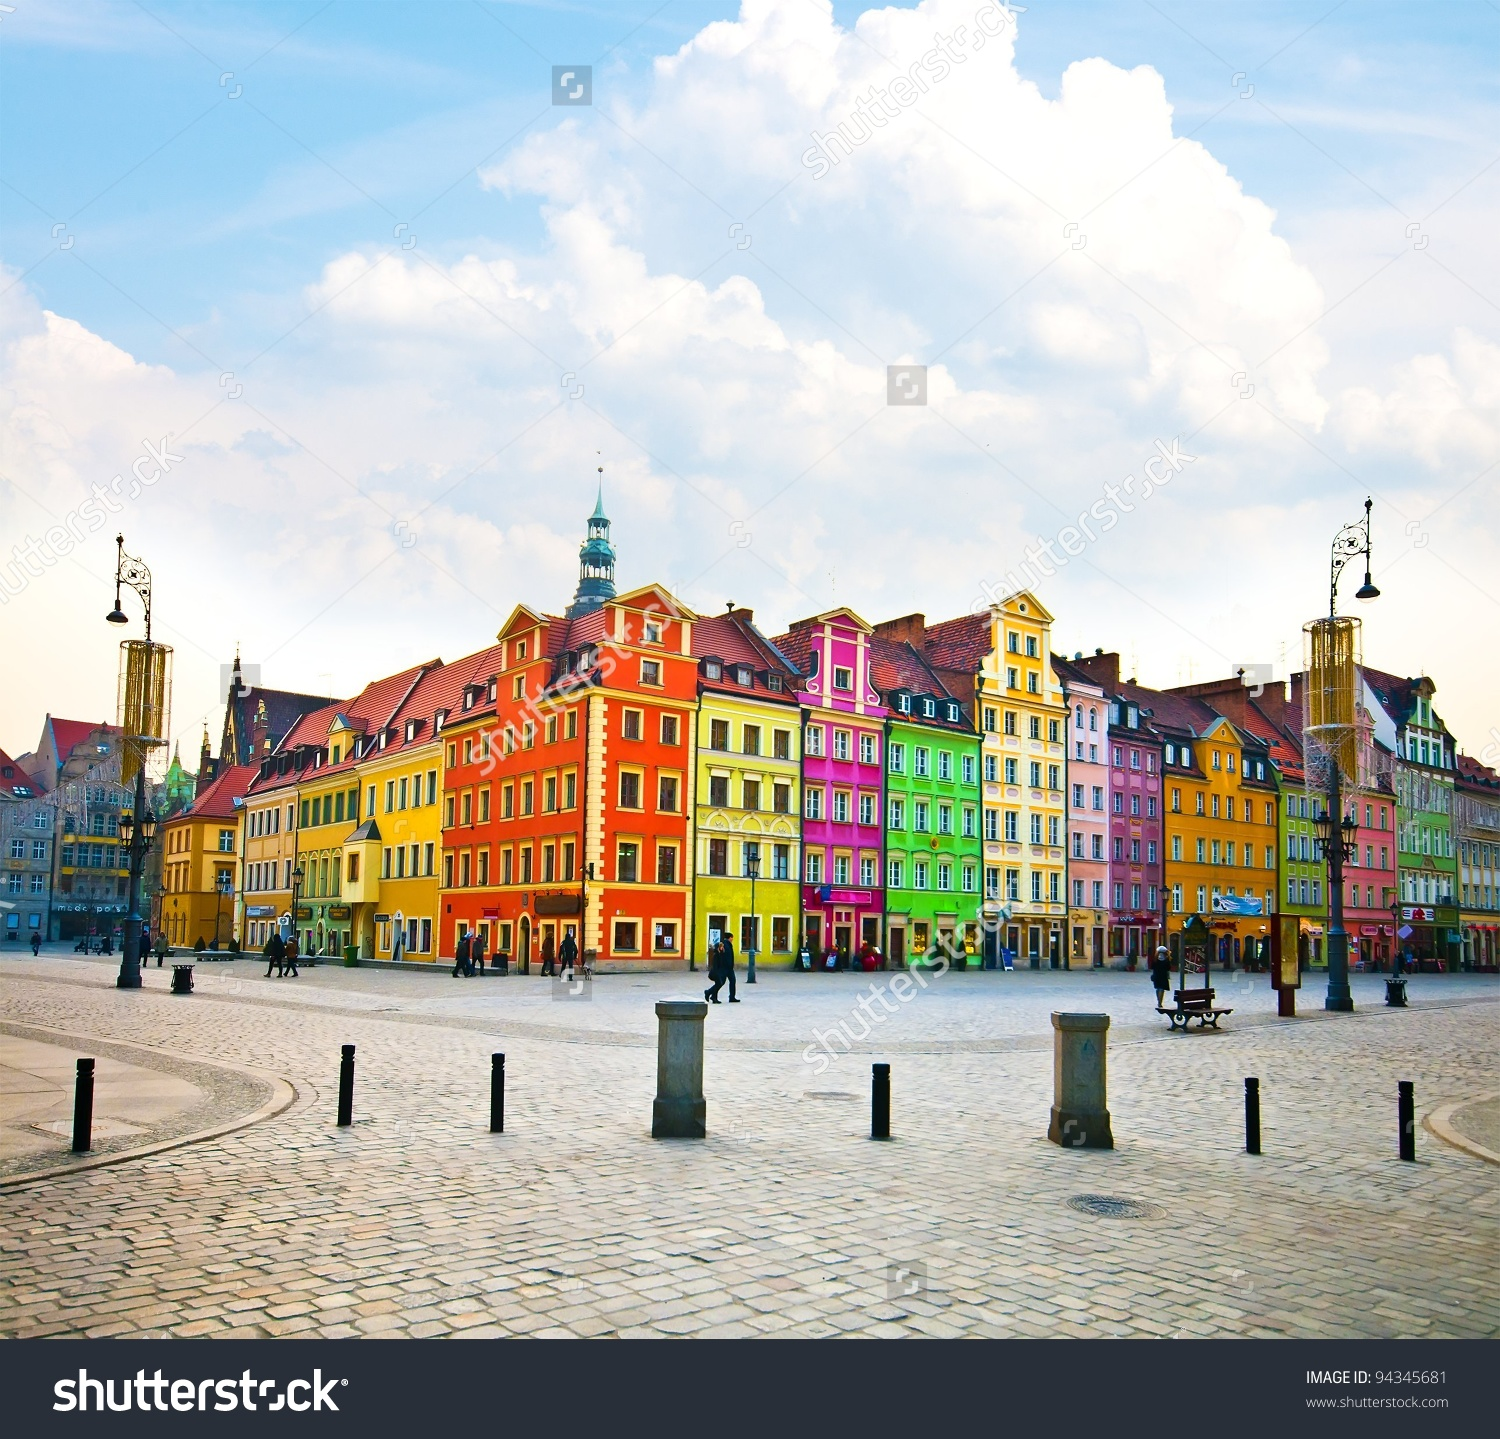 Wroclaw City Center Market Square Tenements Stock Photo 94345681.